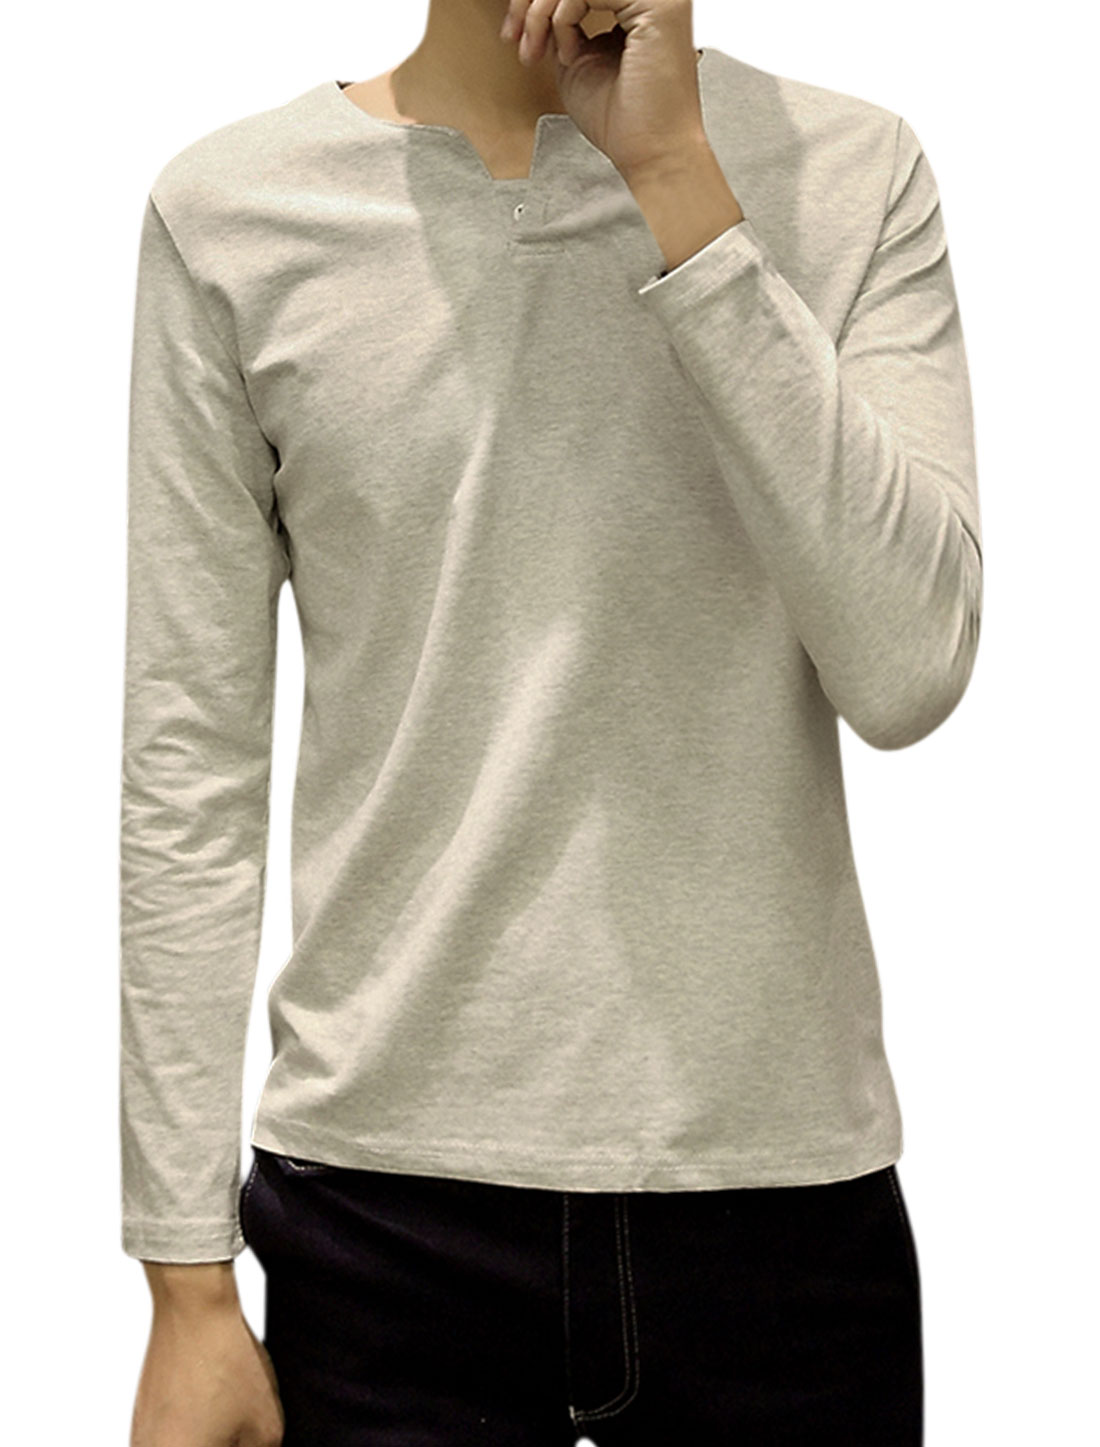 Men Split Neck Long Sleeves Button Upper Tee Shirt Light Gray M